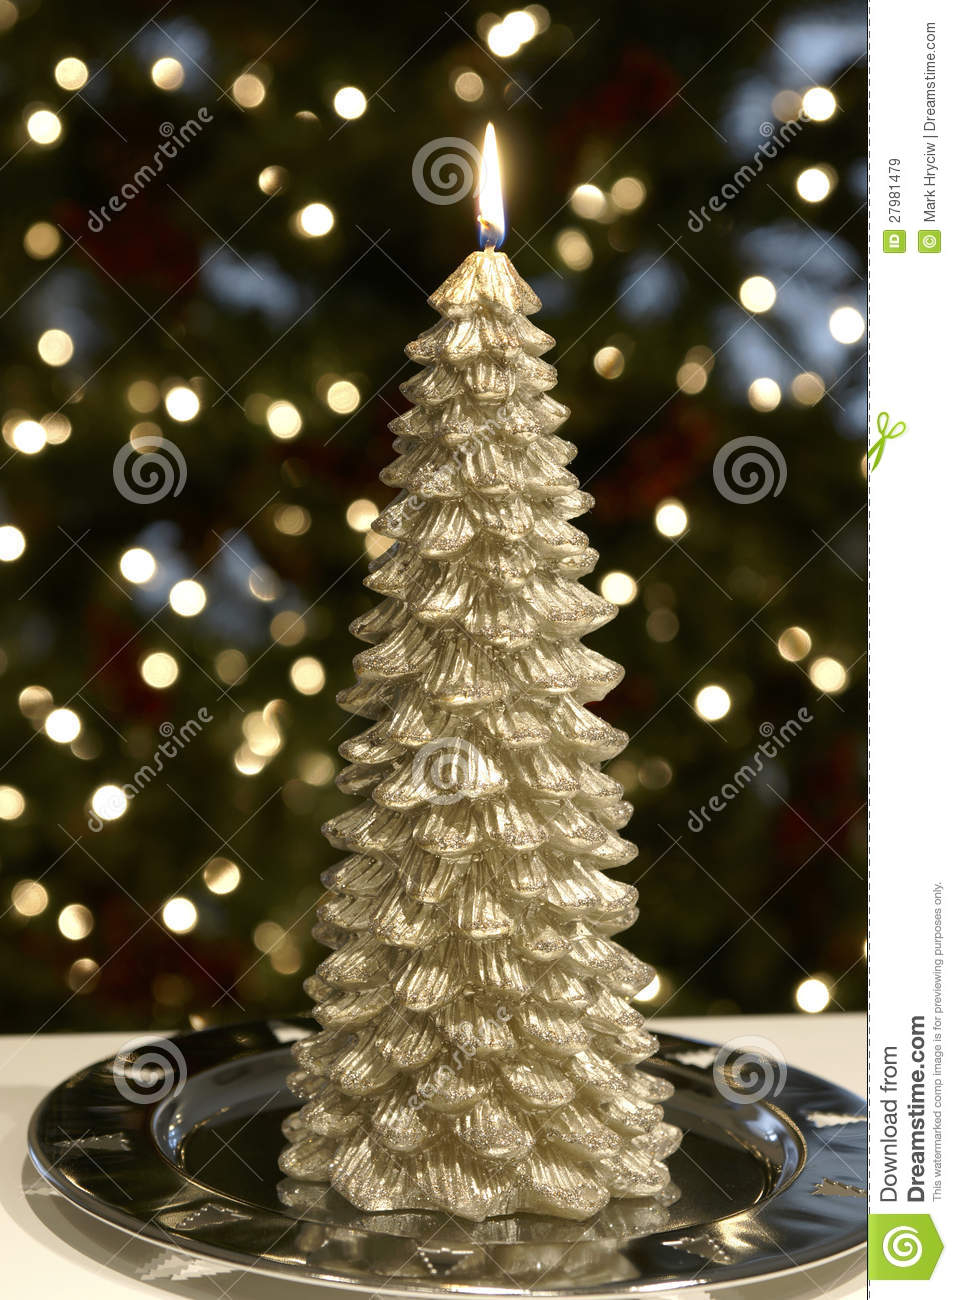 christmas tree candle - Christmas Tree Candles